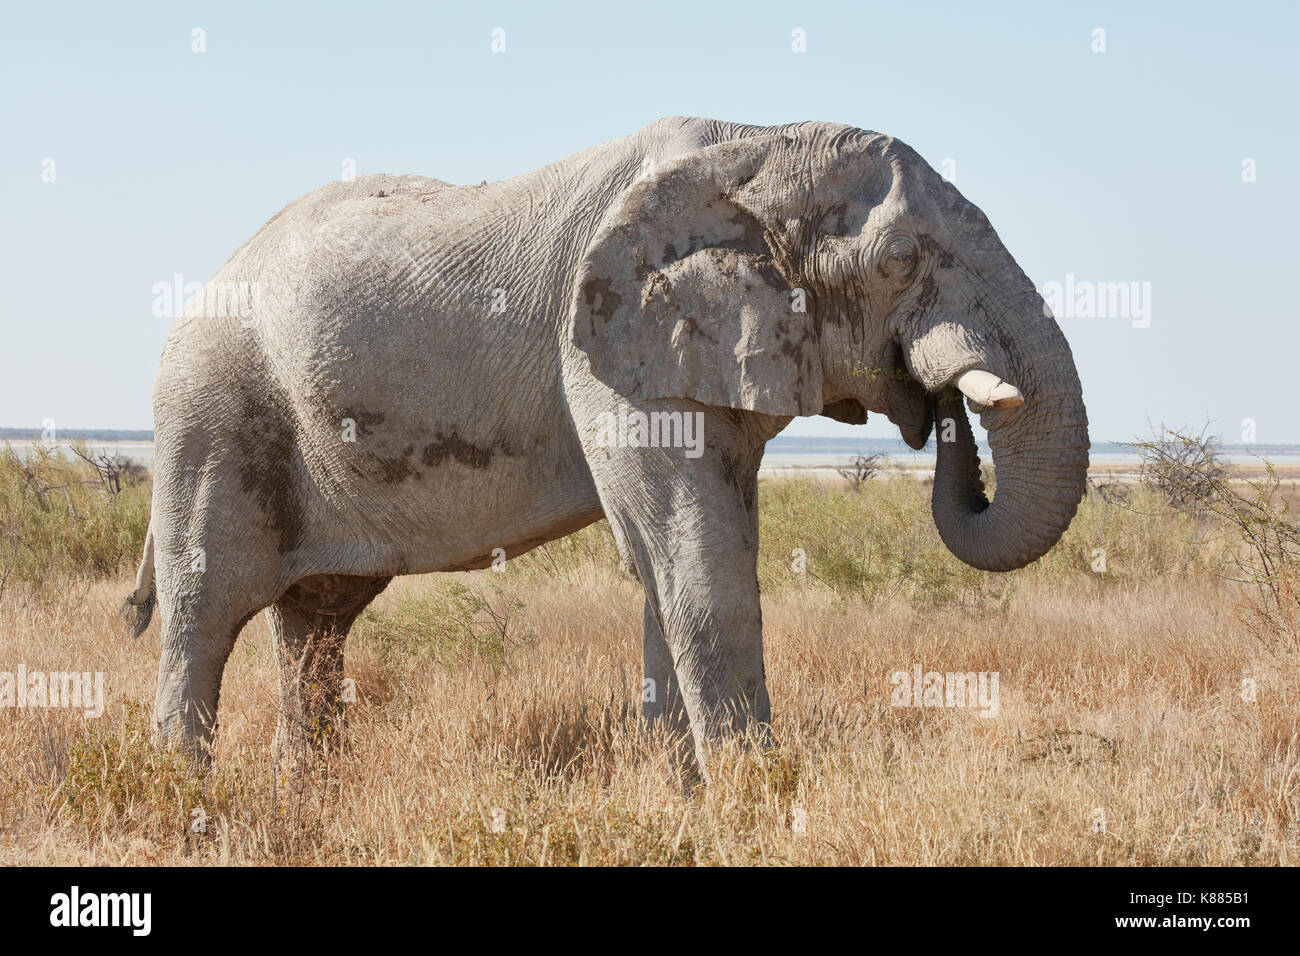 An African elephant, Loxodonta africana, standing in grassland coiling its trunk to feed. - Stock Image